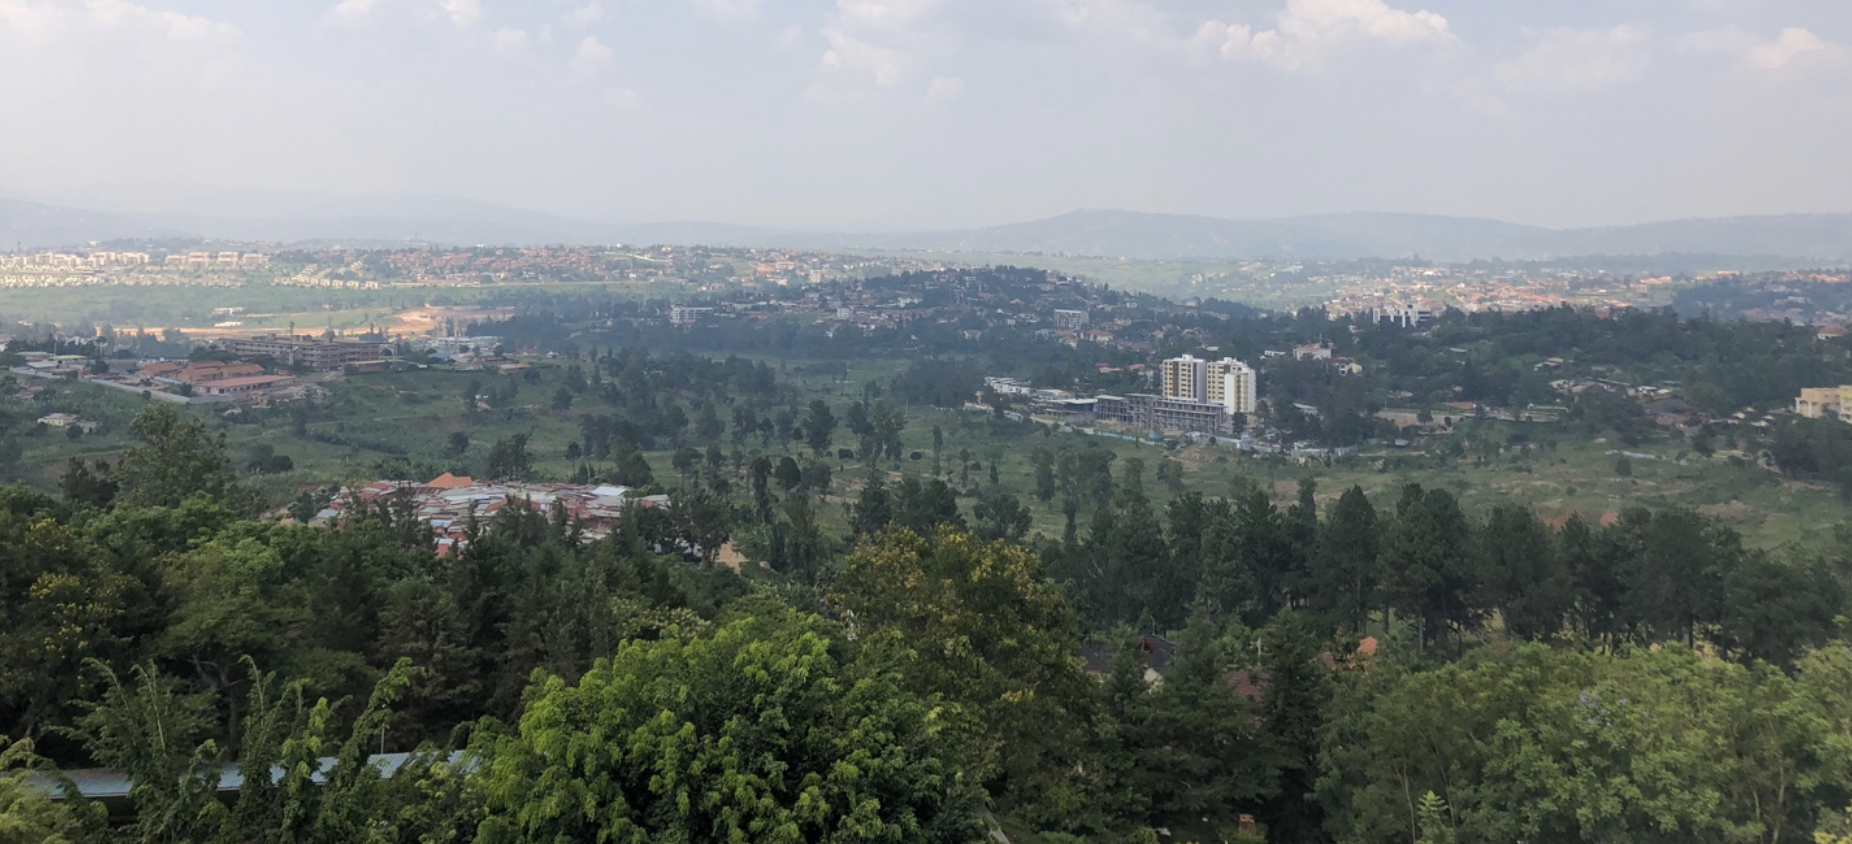 View of Kigali from a hilltop